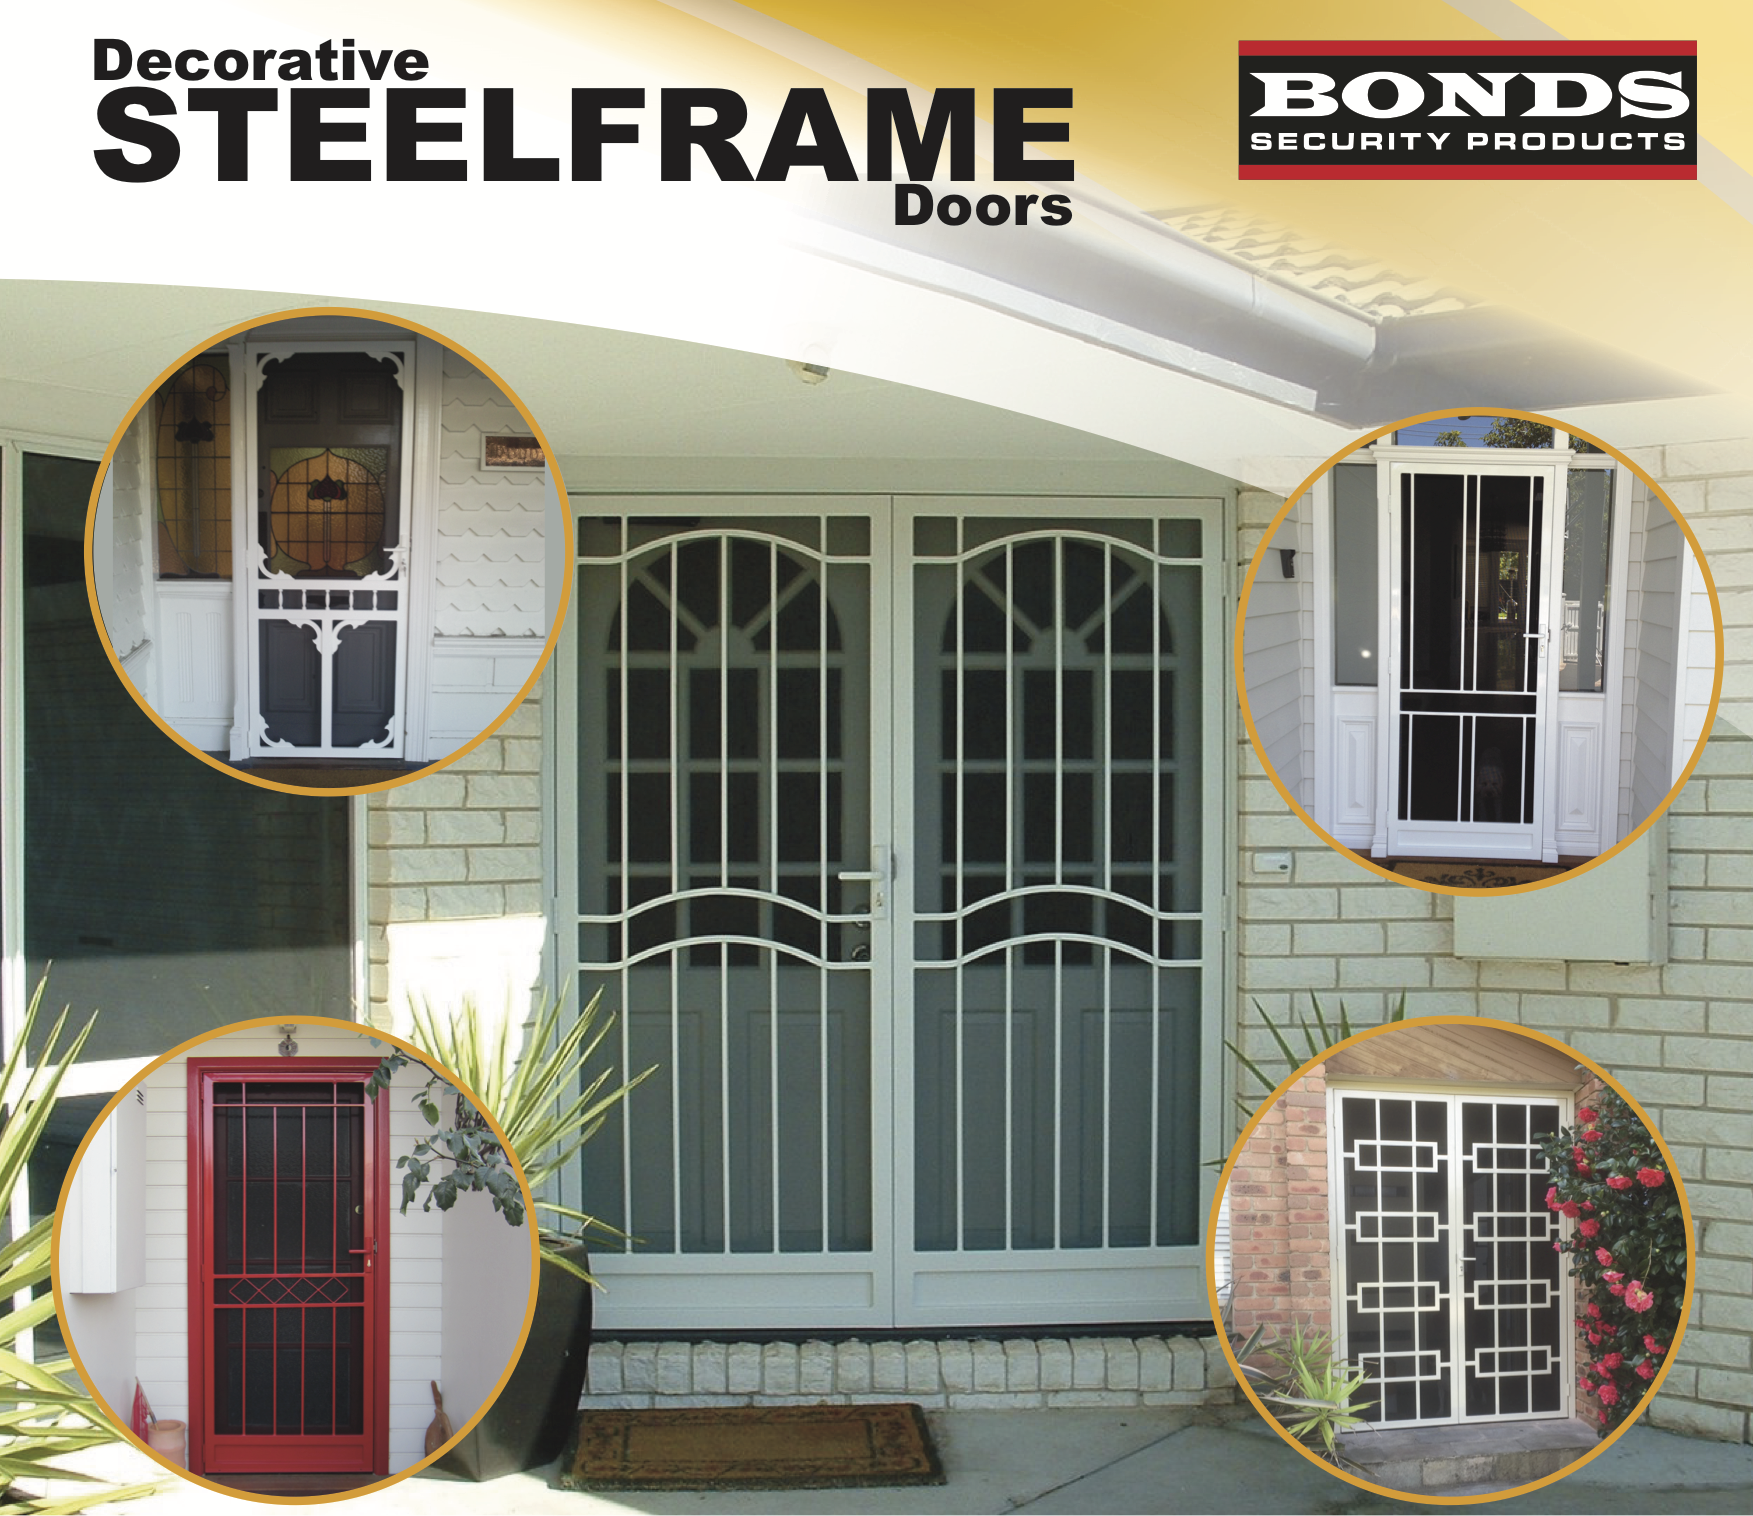 Hinged Steel Frame Doors Perth - Bonds Security Products